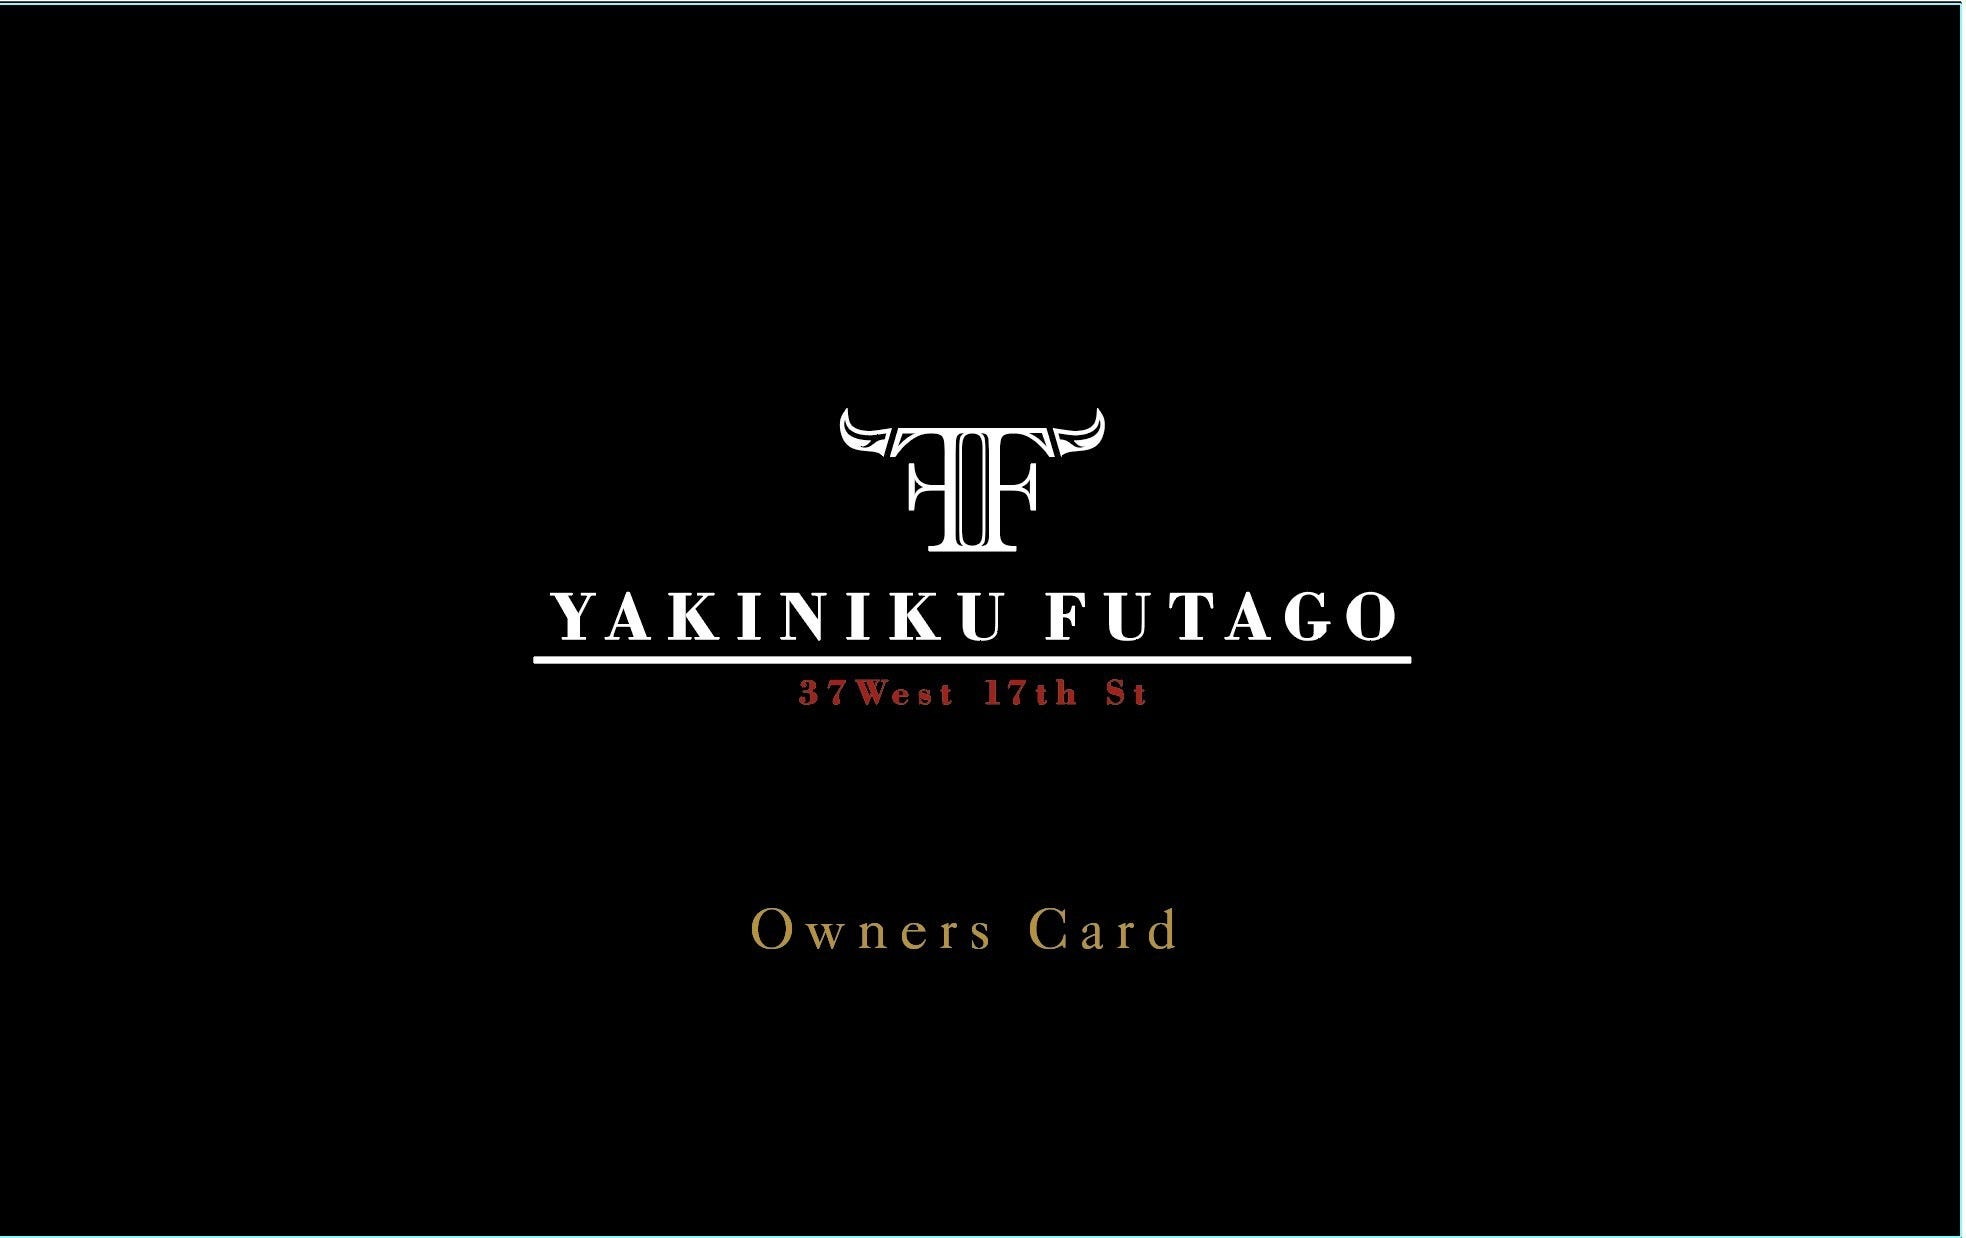 焼肉/YAKINIKU FUTAGO 37West 17th St